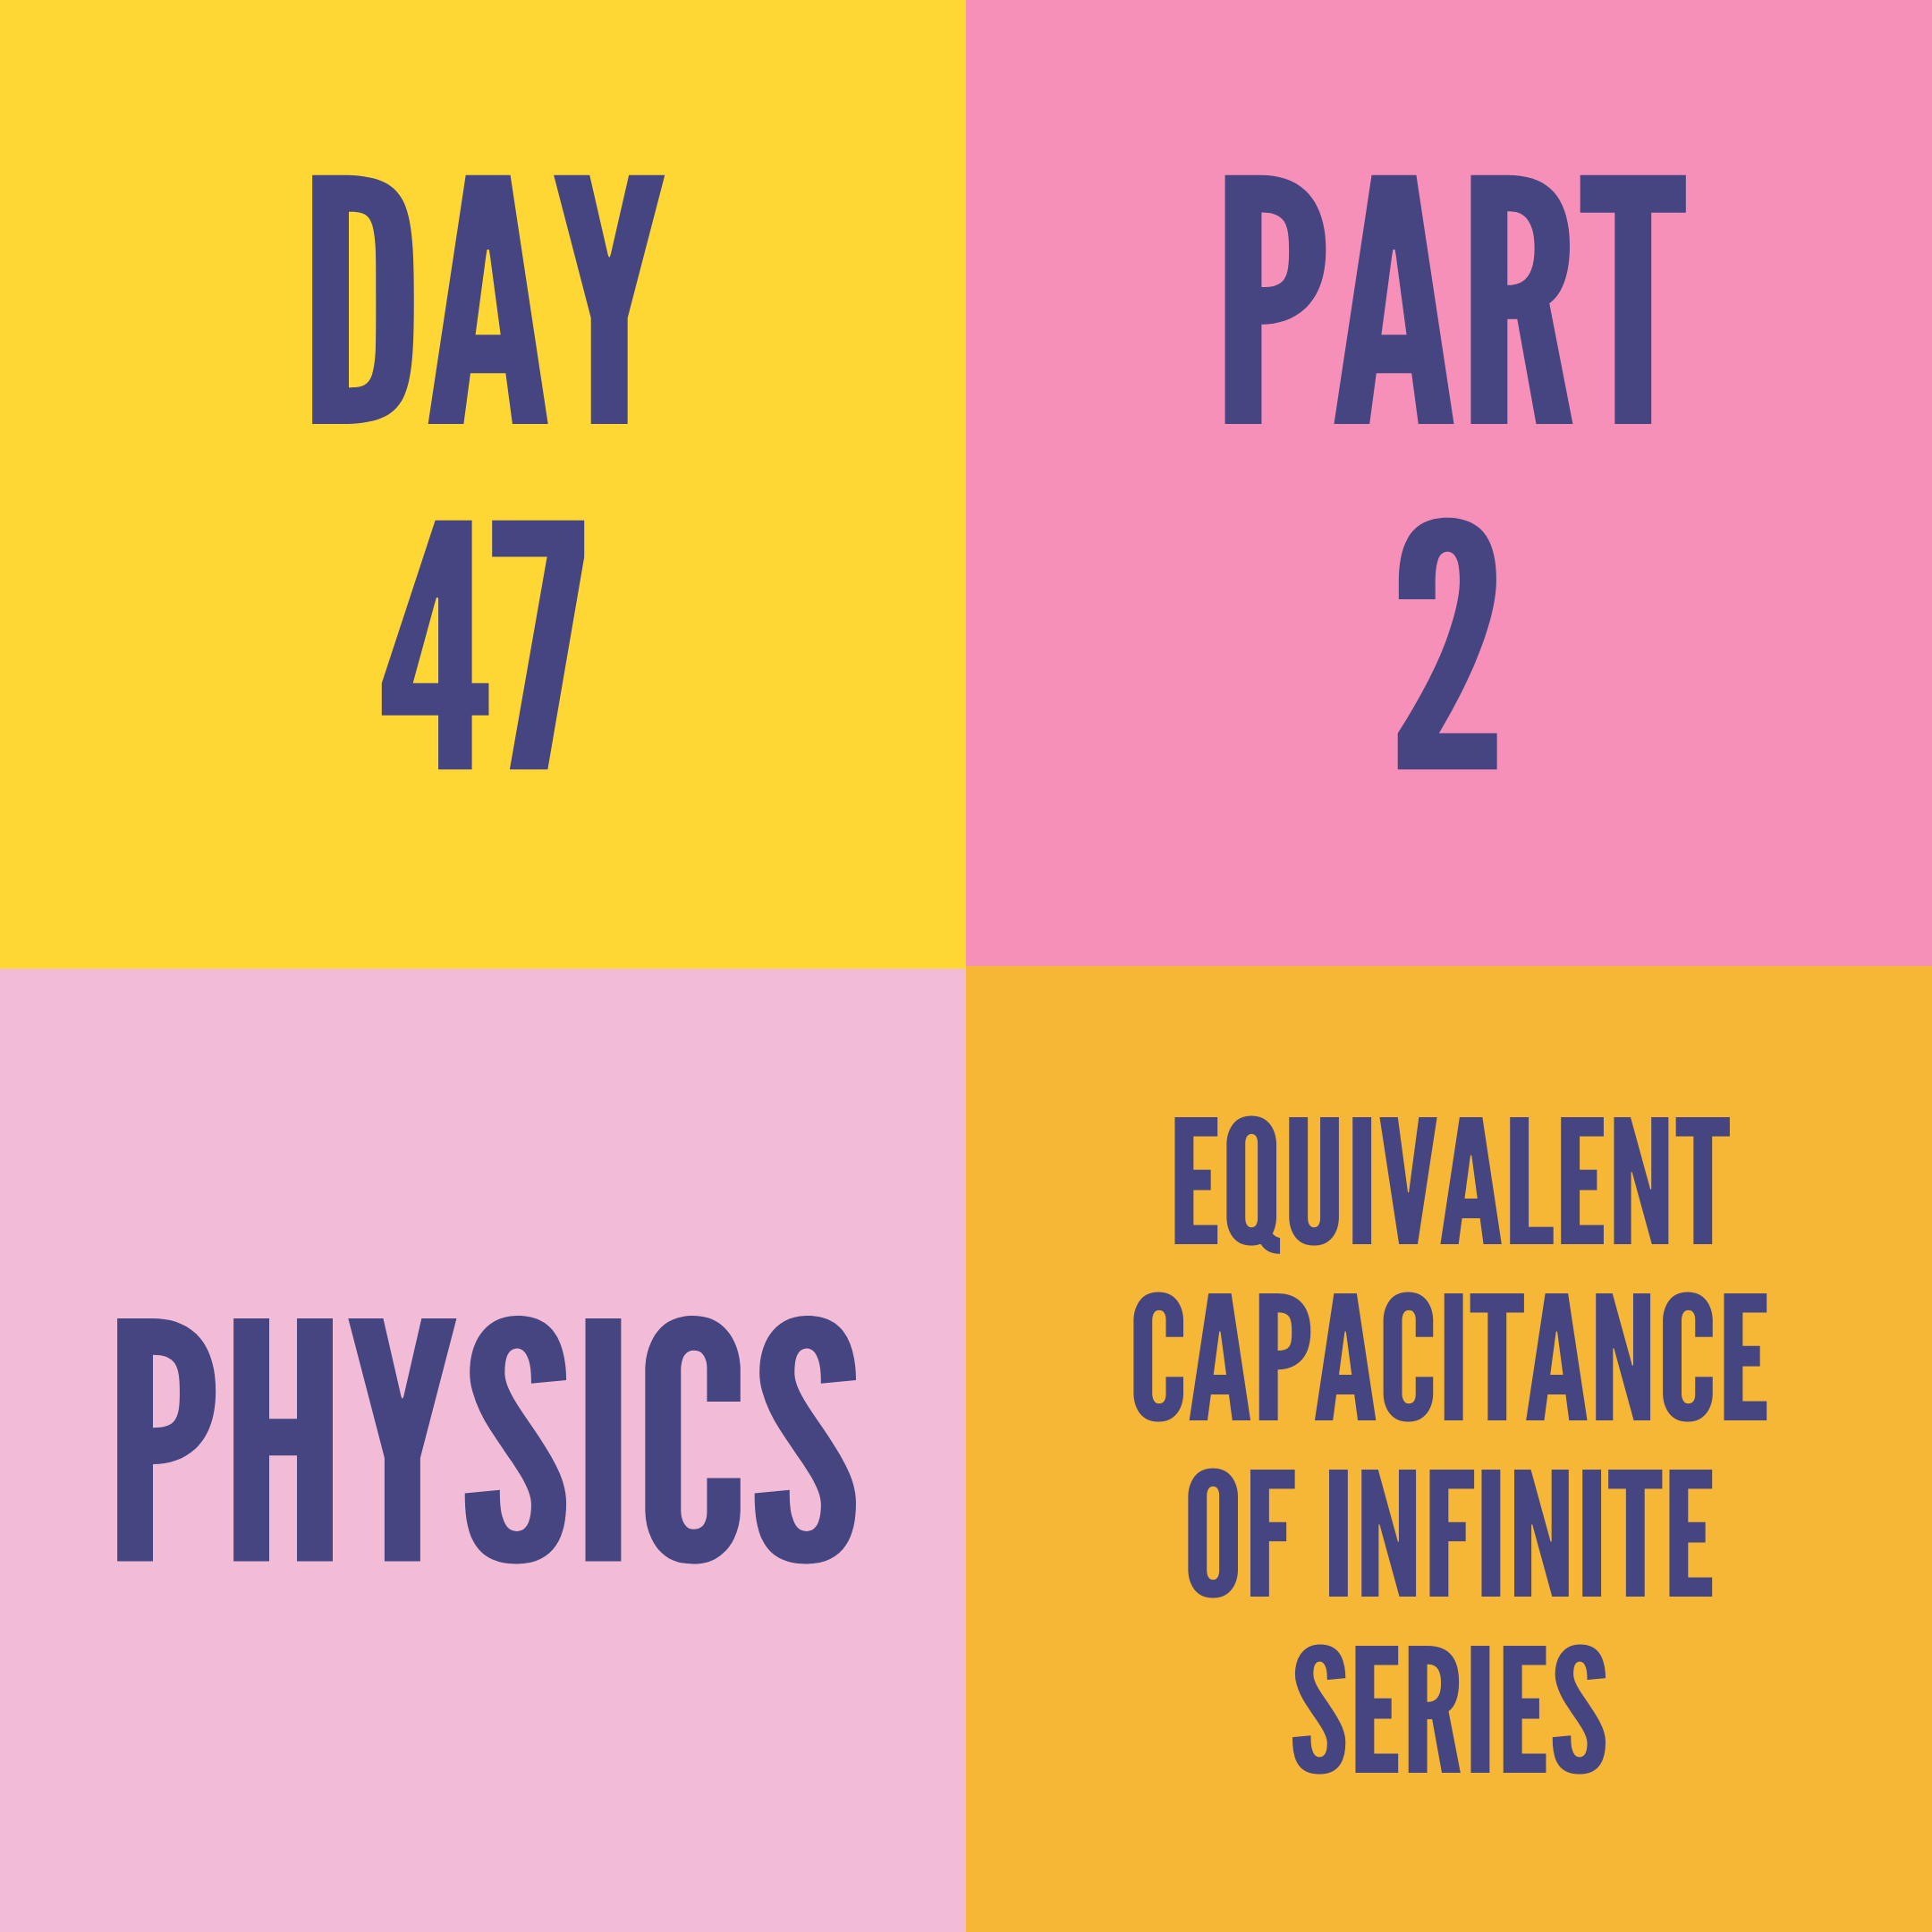 DAY-47 PART-2  EQUIVALENT CAPACITANCE OF INFINITE SERIES